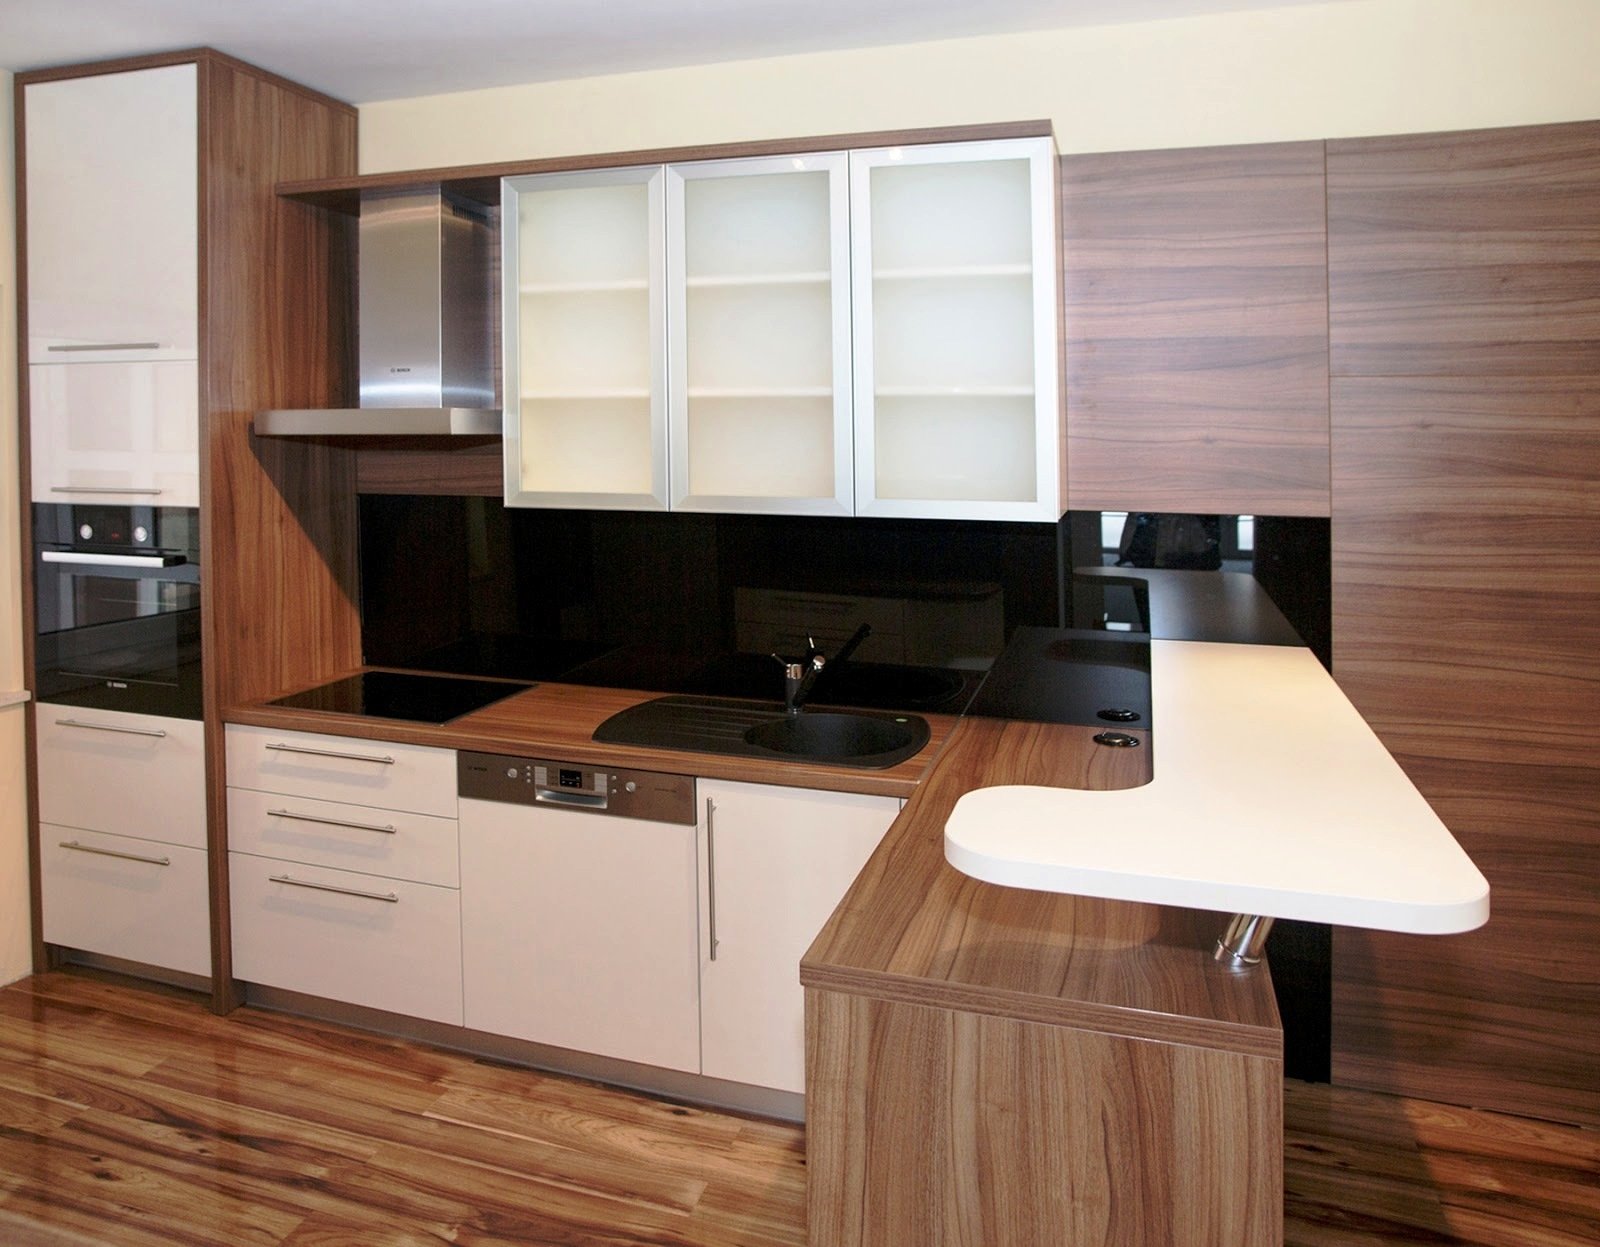 Refacing Old Laminate Kitchen Cabinets'